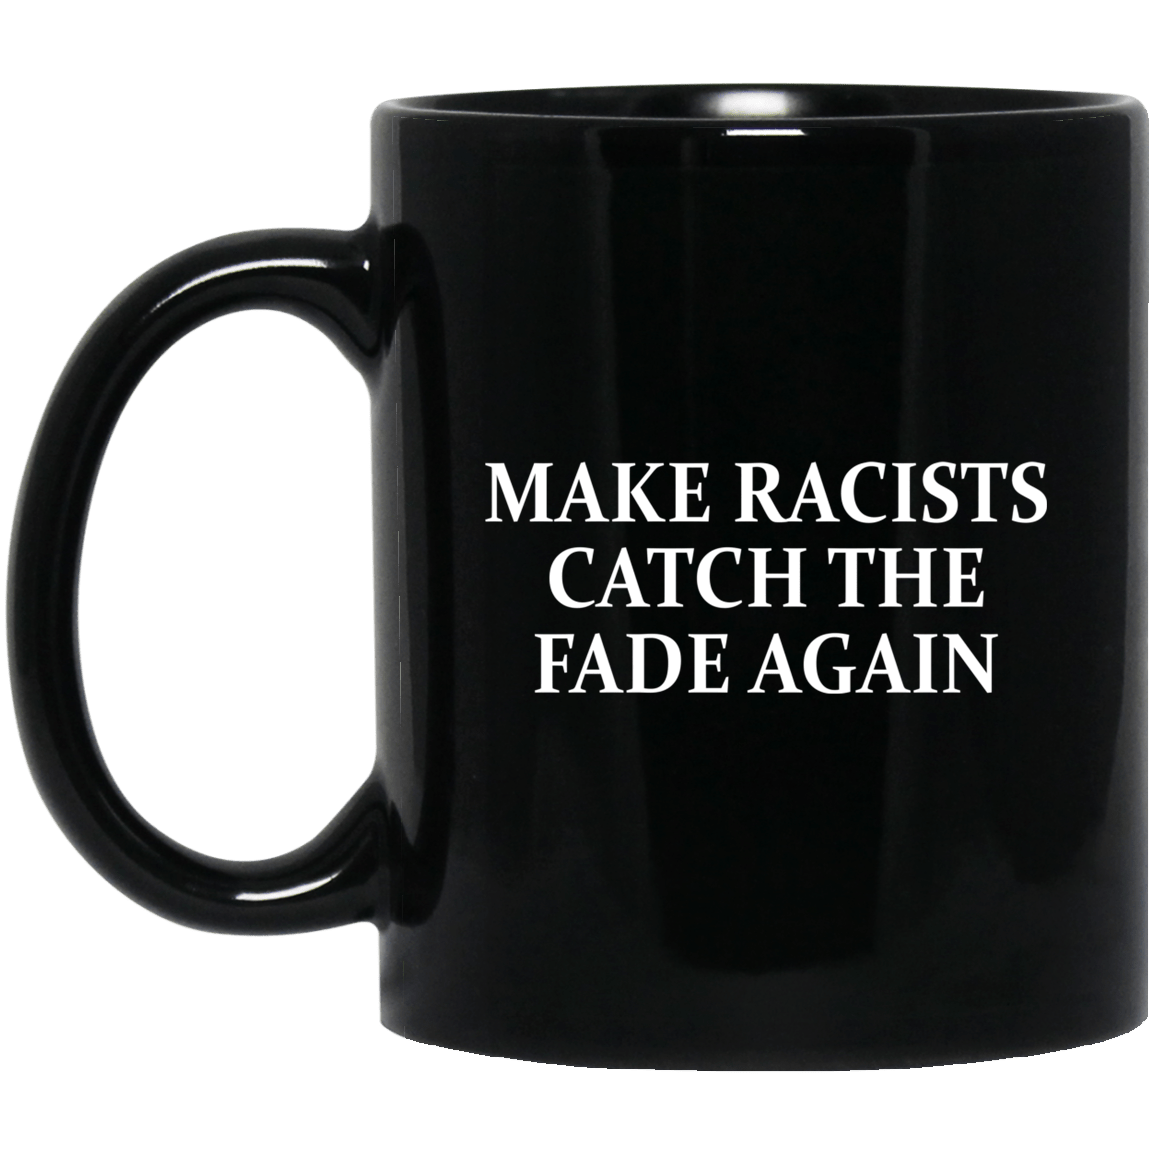 Make Racists Catch The Fade Again Mug 1065-10181-88767860-49307 - Tee Ript